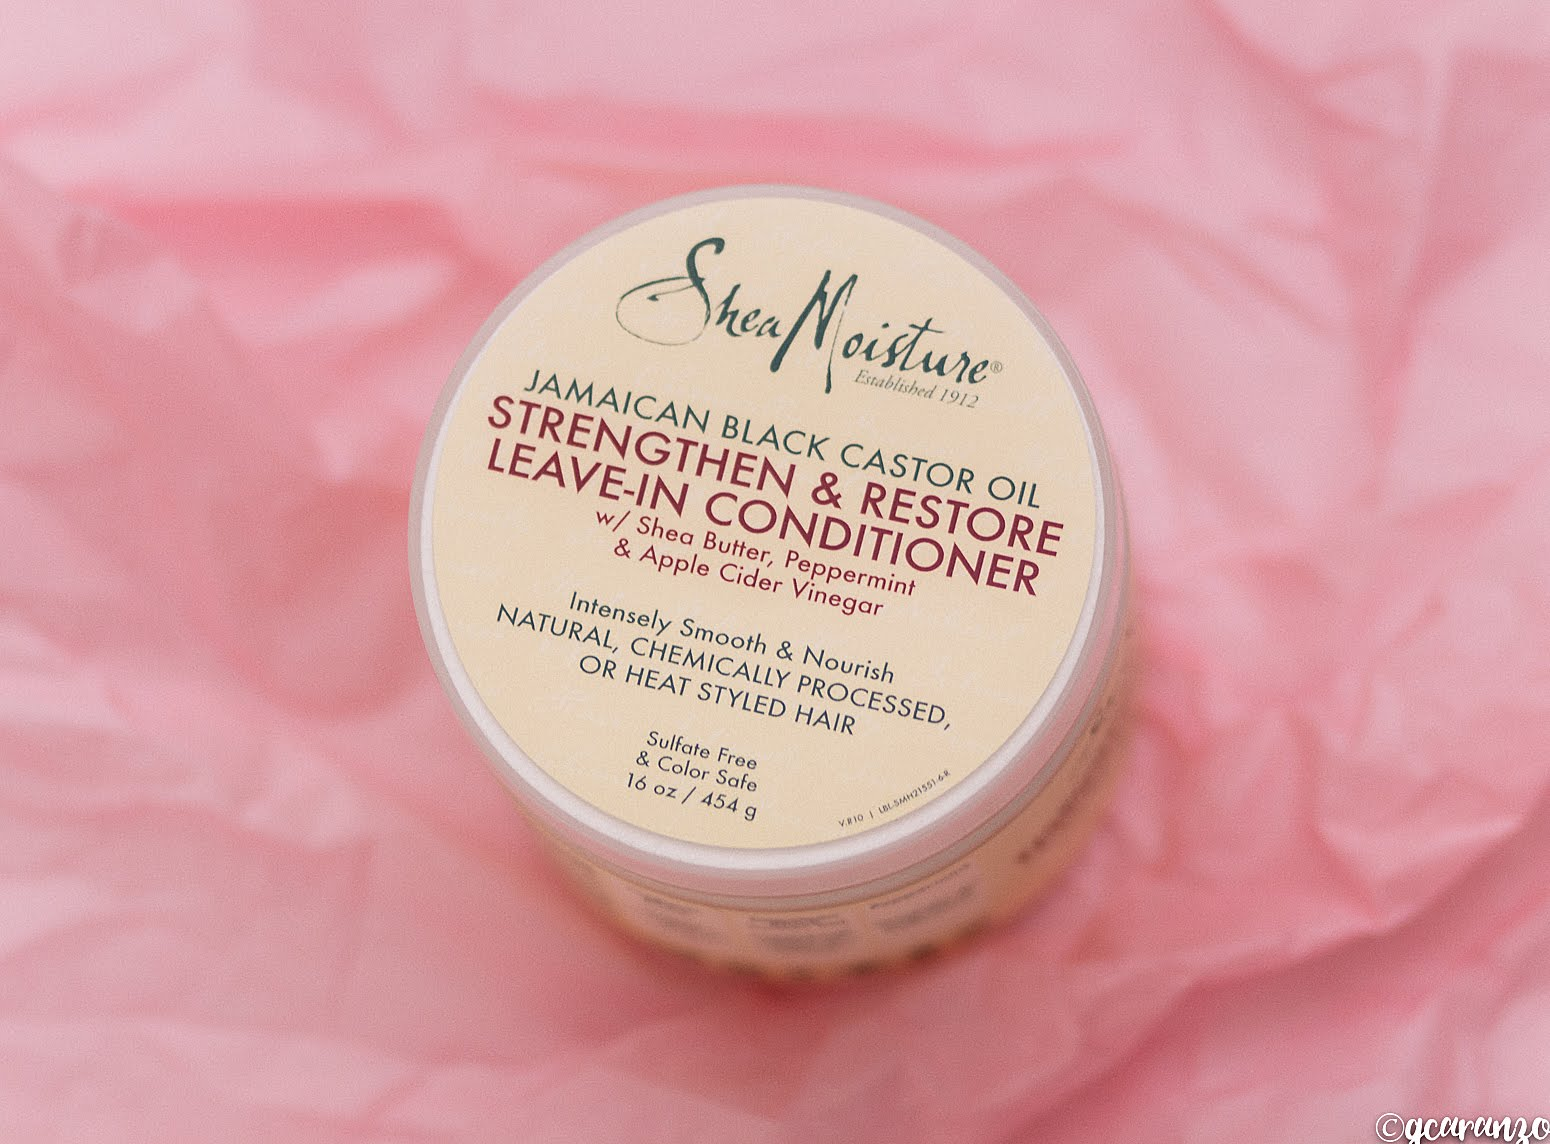 Shea Moisture Jamaican Black Castor Oil Strengthen & Restore Leave-in Conditioner Product Review